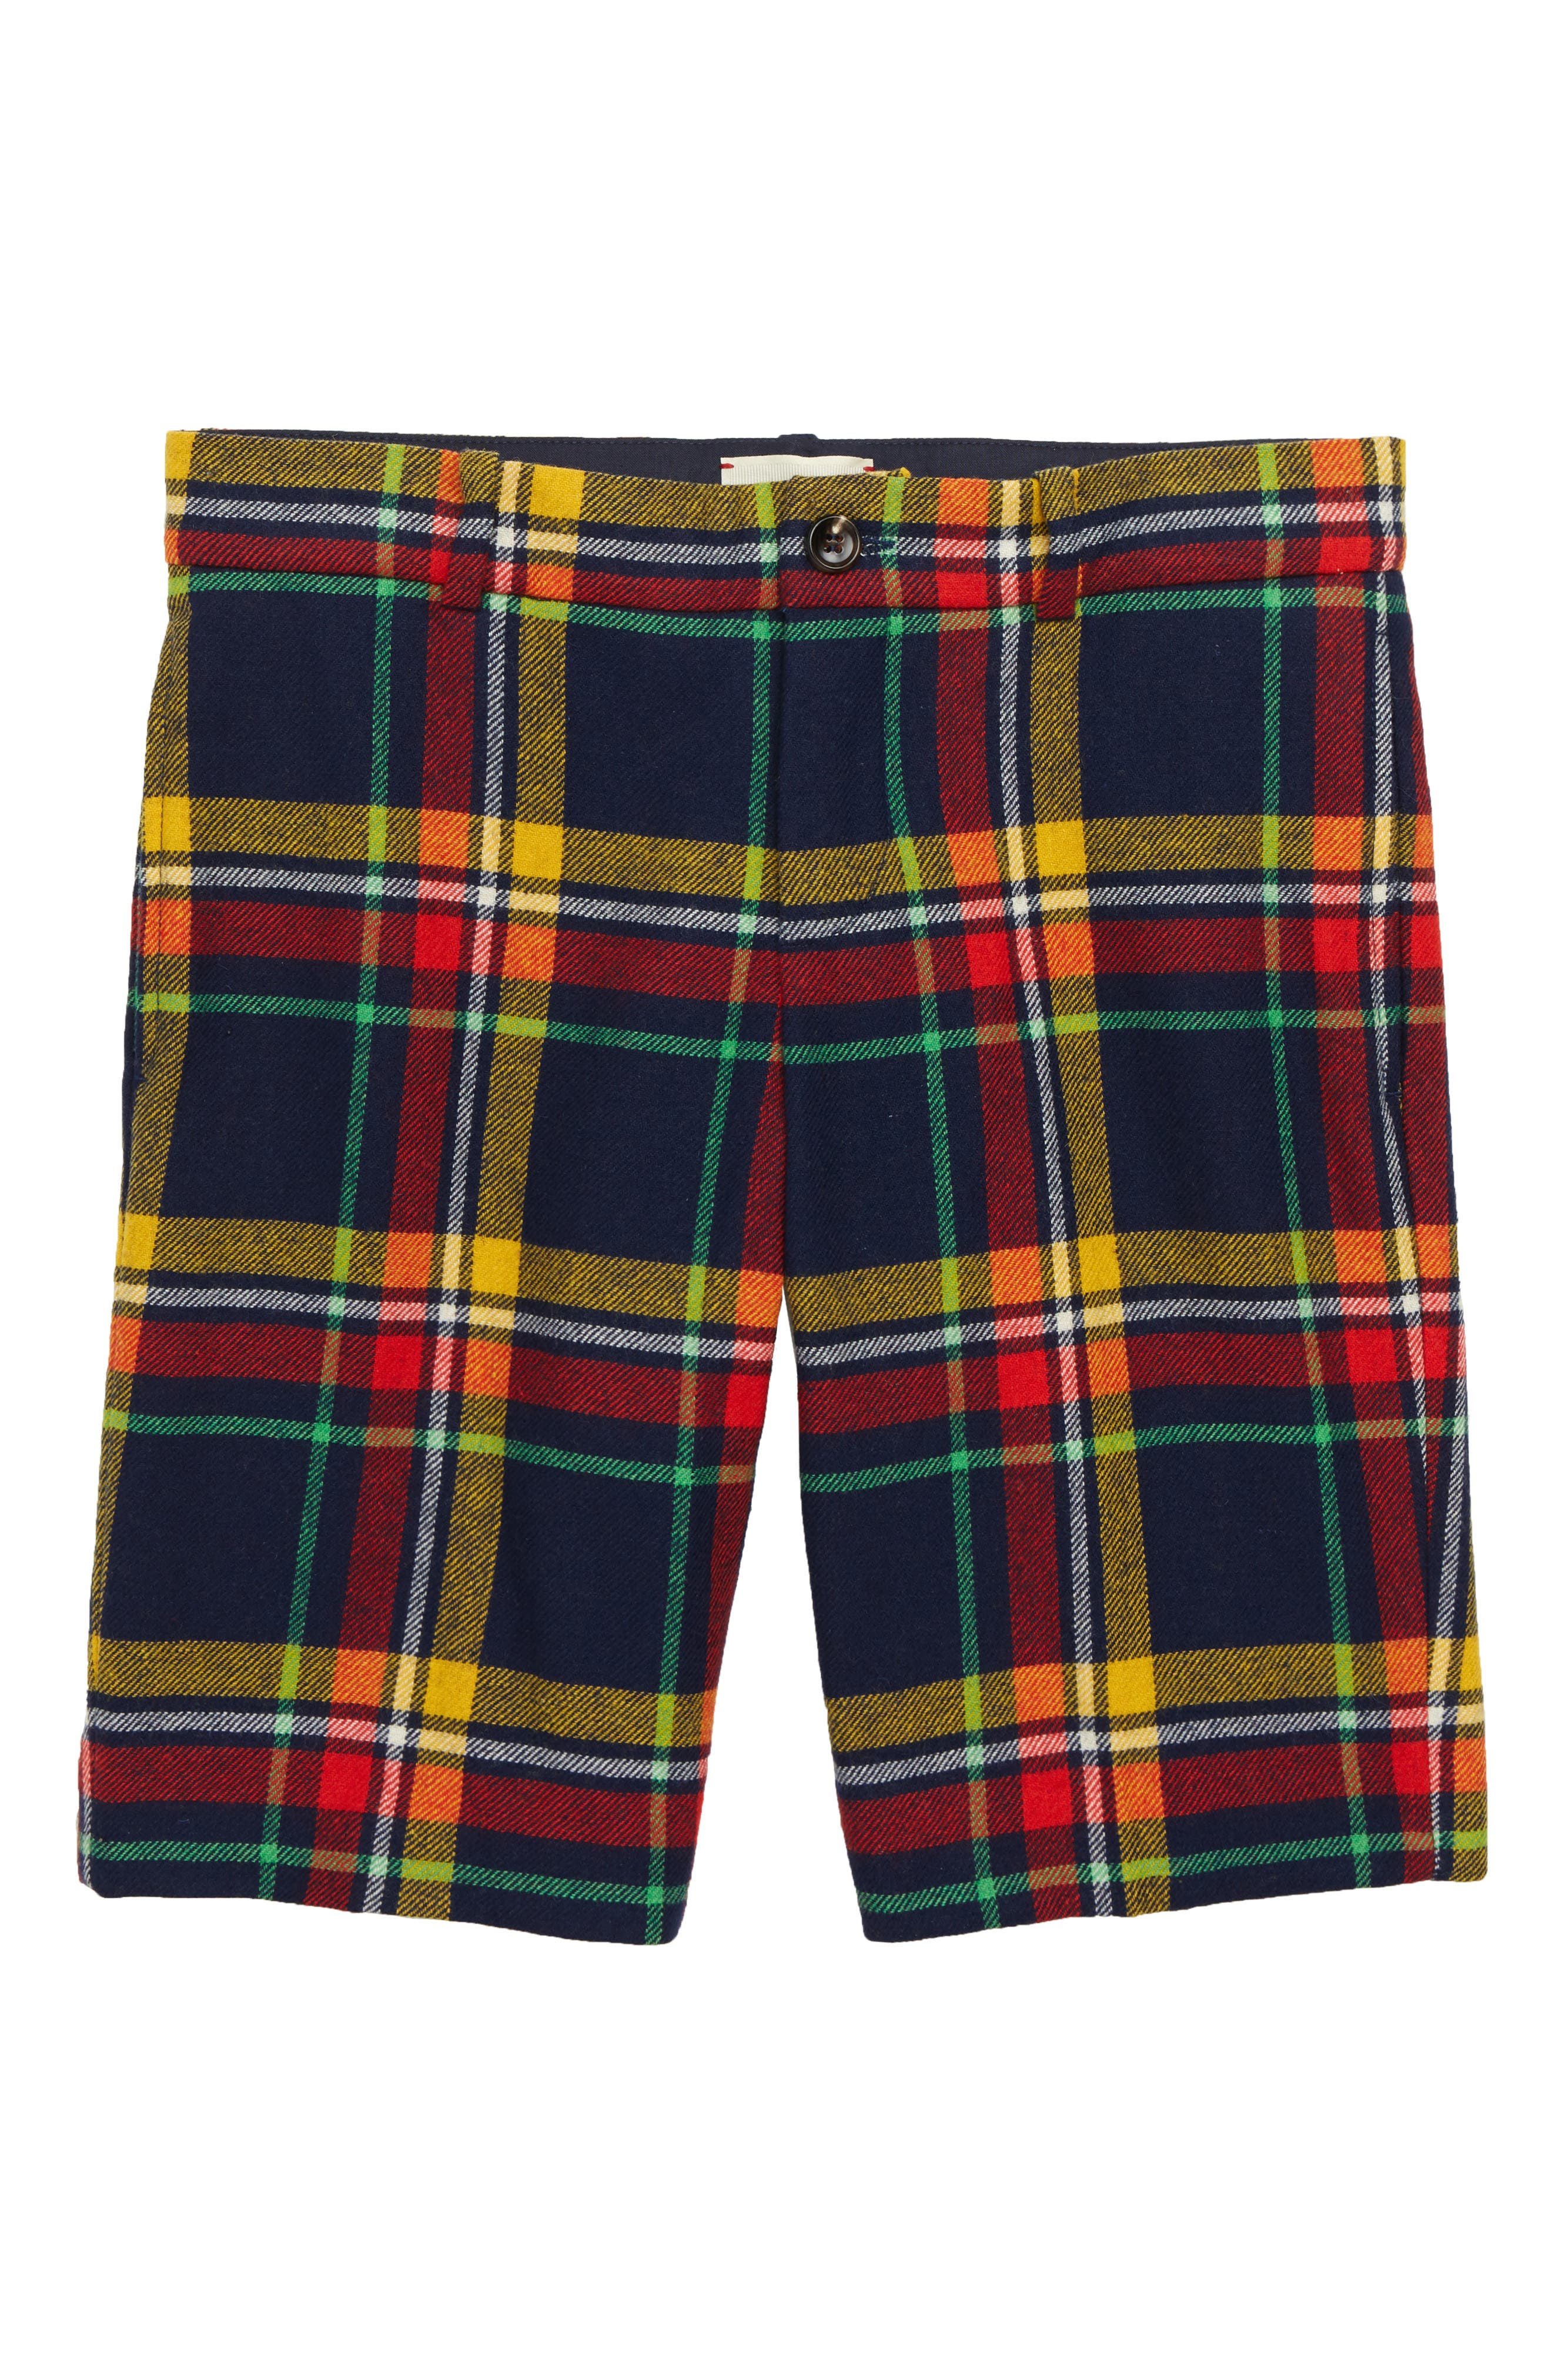 Plaid Bermuda Shorts,                         Main,                         color, OLTREMARE/ PEPPER RED